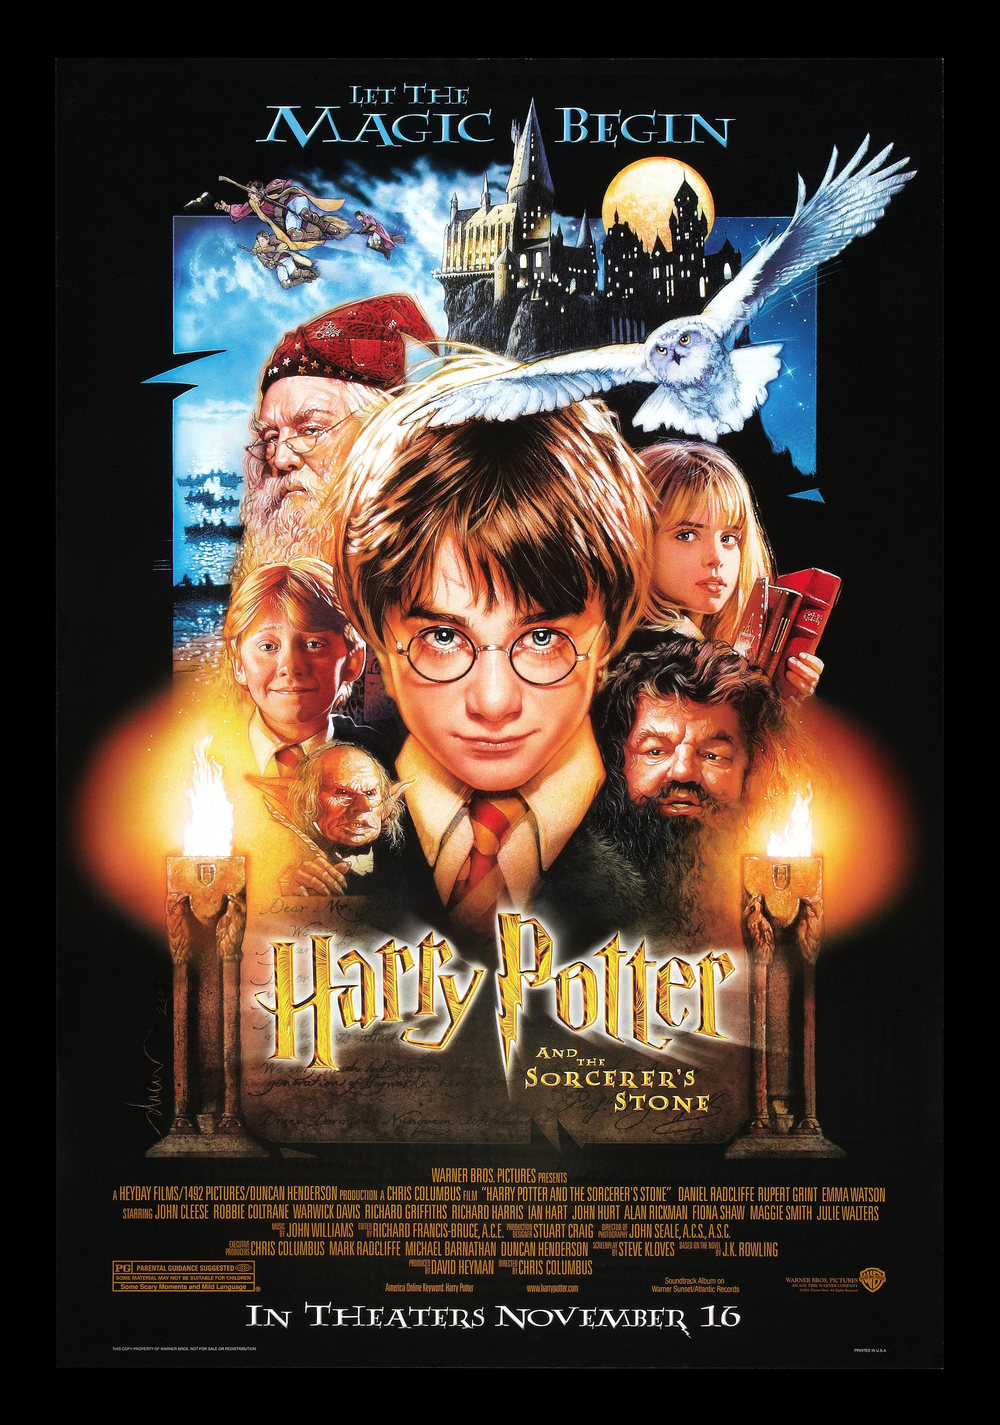 "<a href=""http://www.totallyemmawatson.com/gallery/acting-career/harry-potter-and-the-sorcerers-stone/posters"">Posters</a>"